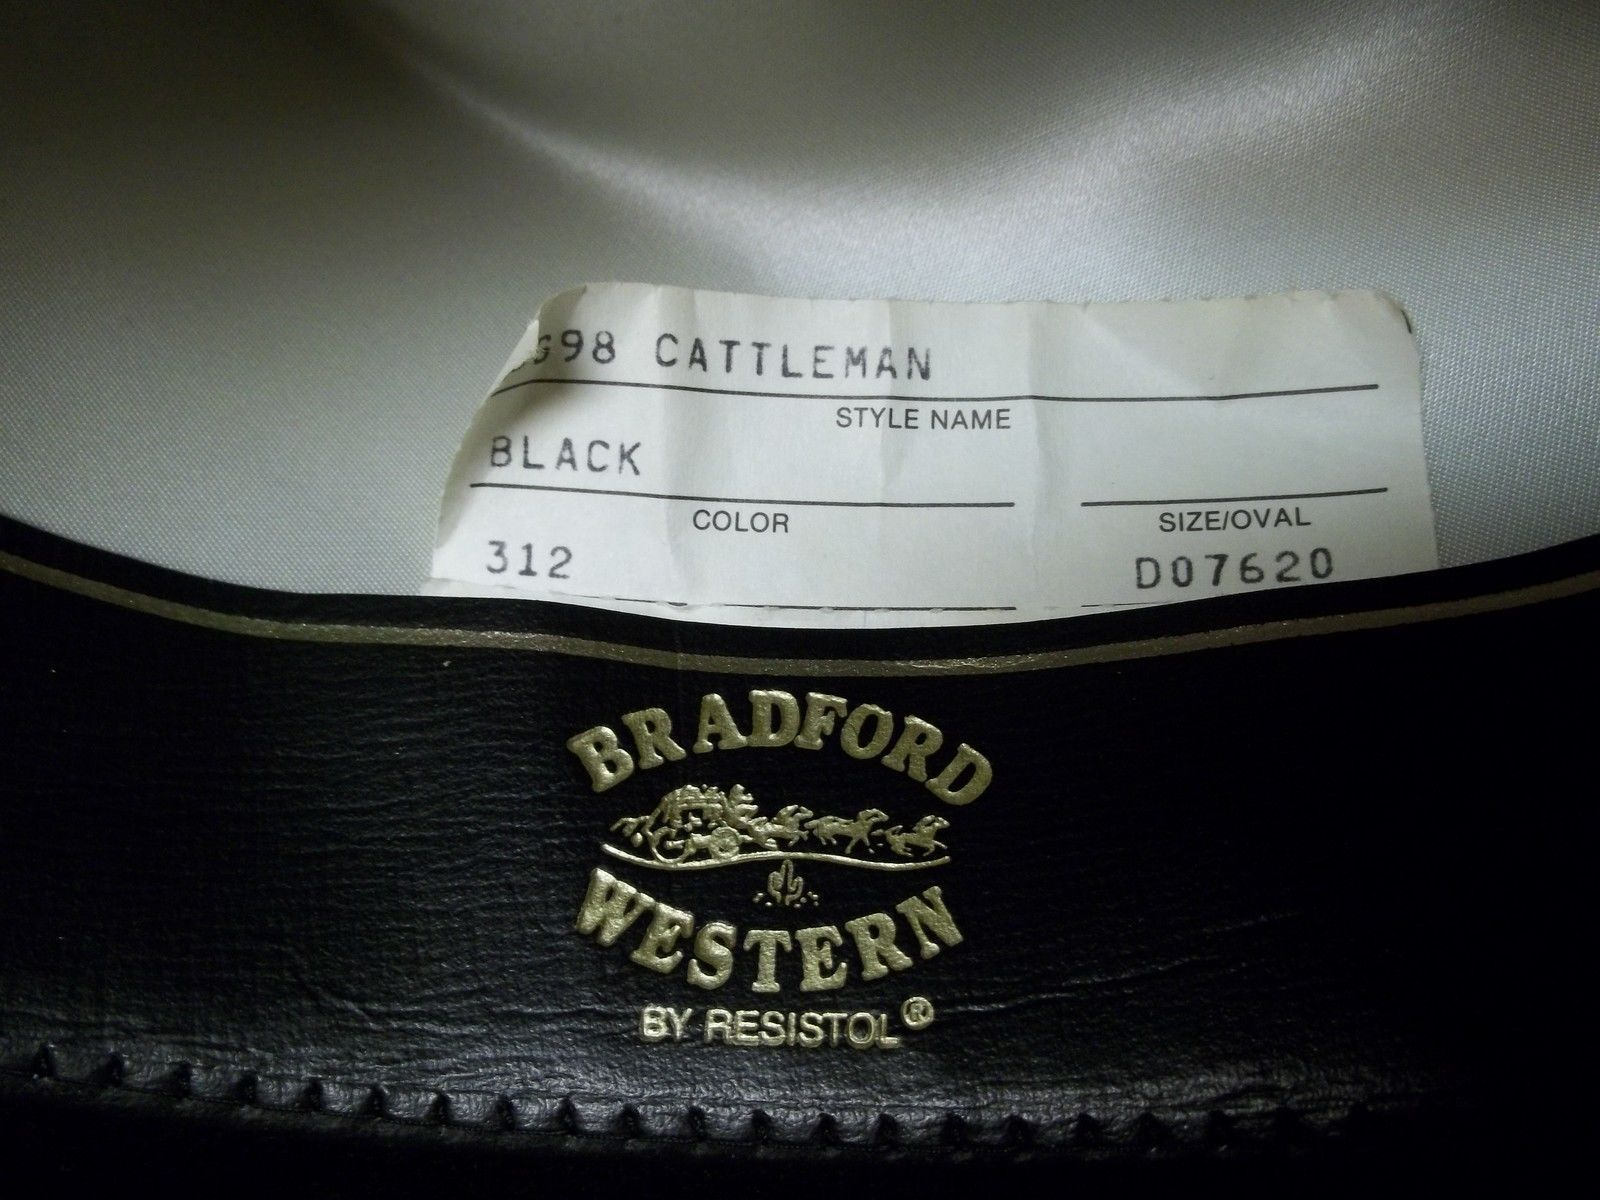 Bradford Western Resistol Cattleman Black Hat Log Oval 6 3/4